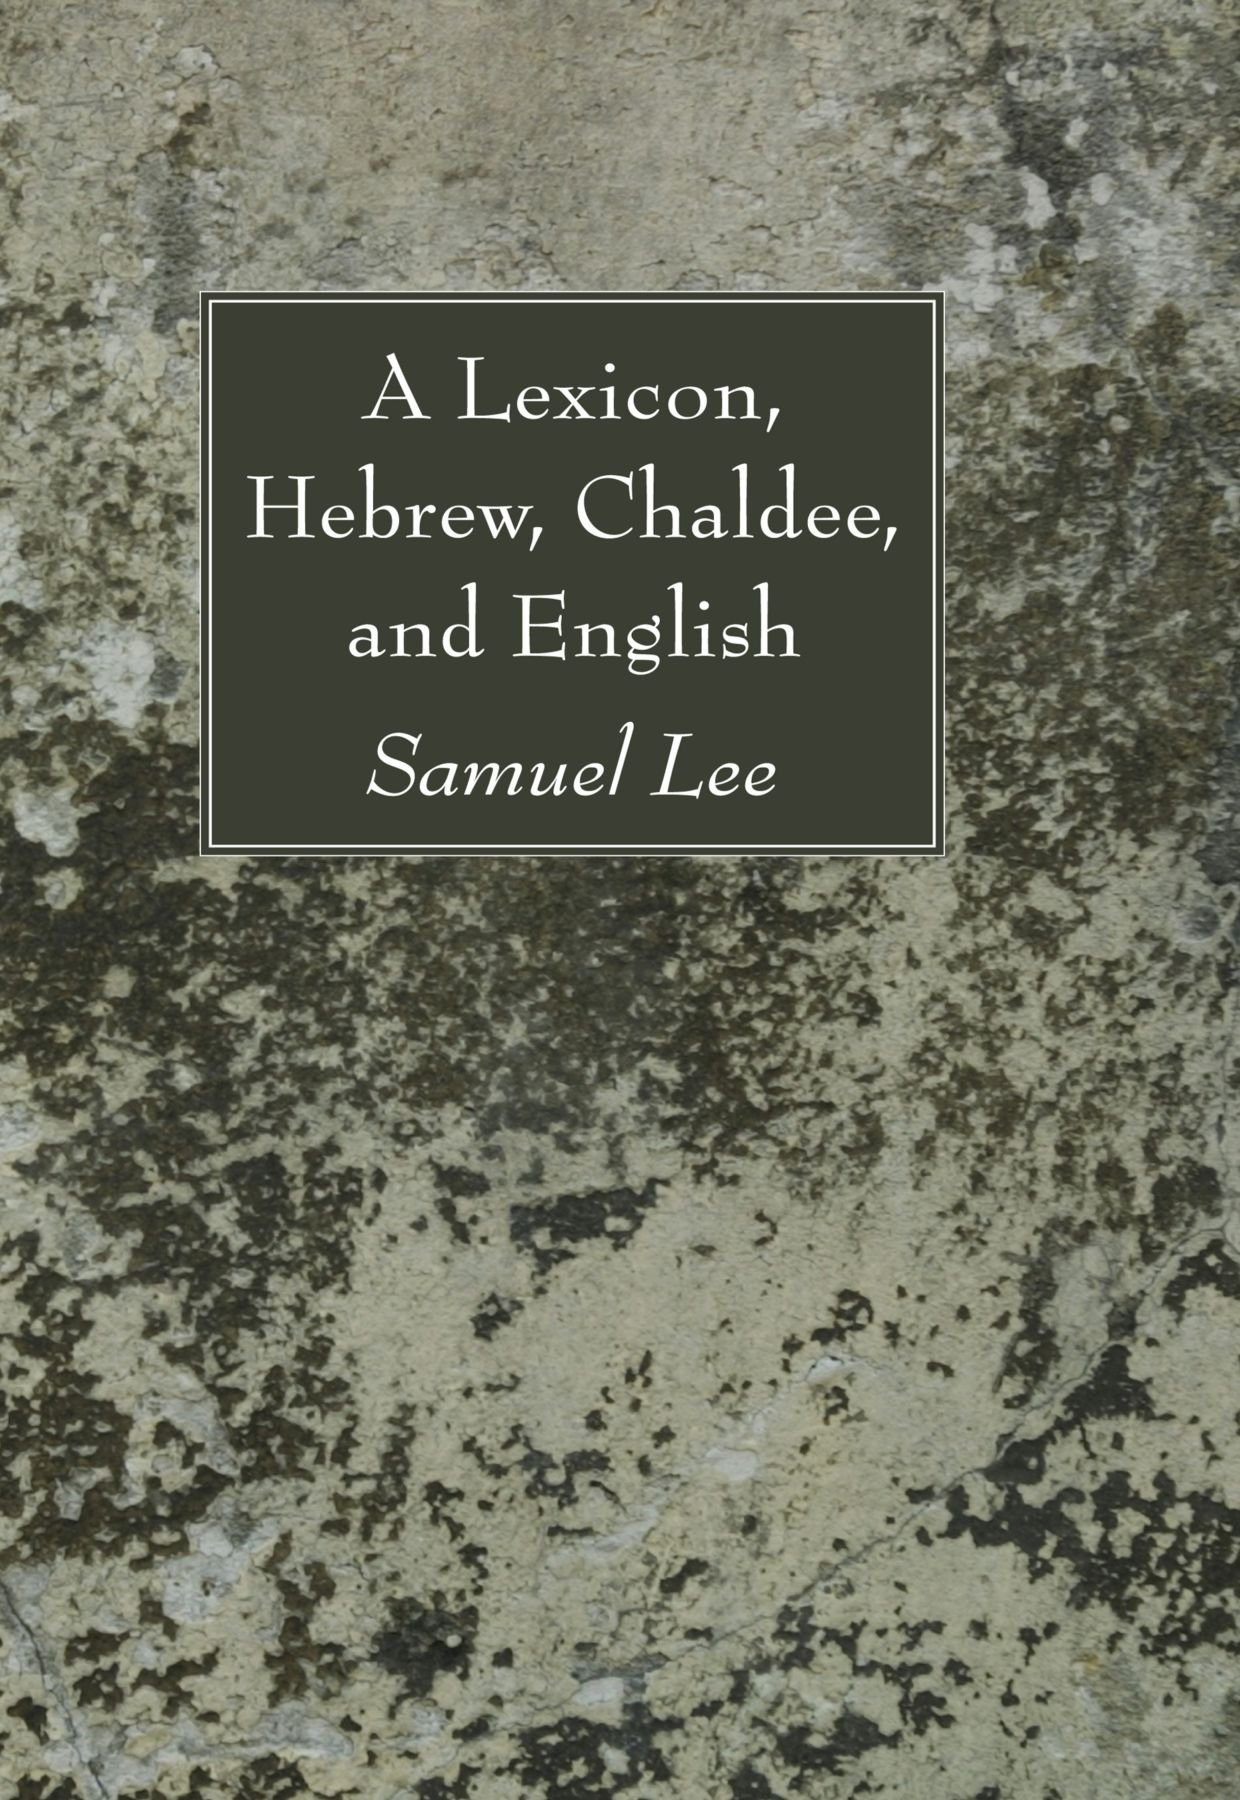 A Lexicon, Hebrew, Chaldee, and English: